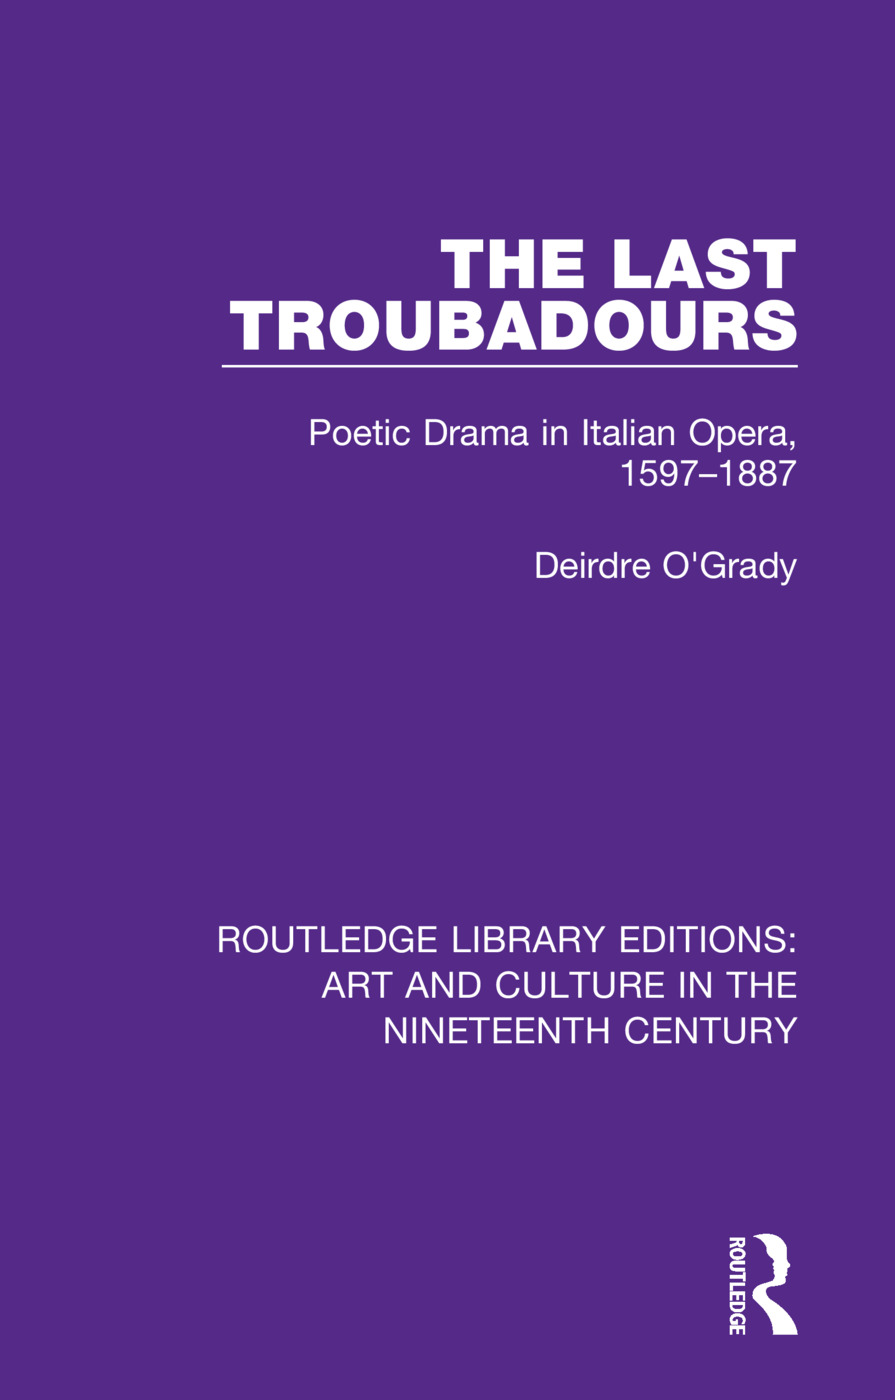 The Last Troubadours: Poetic Drama in Italian Opera, 1597-1887 book cover